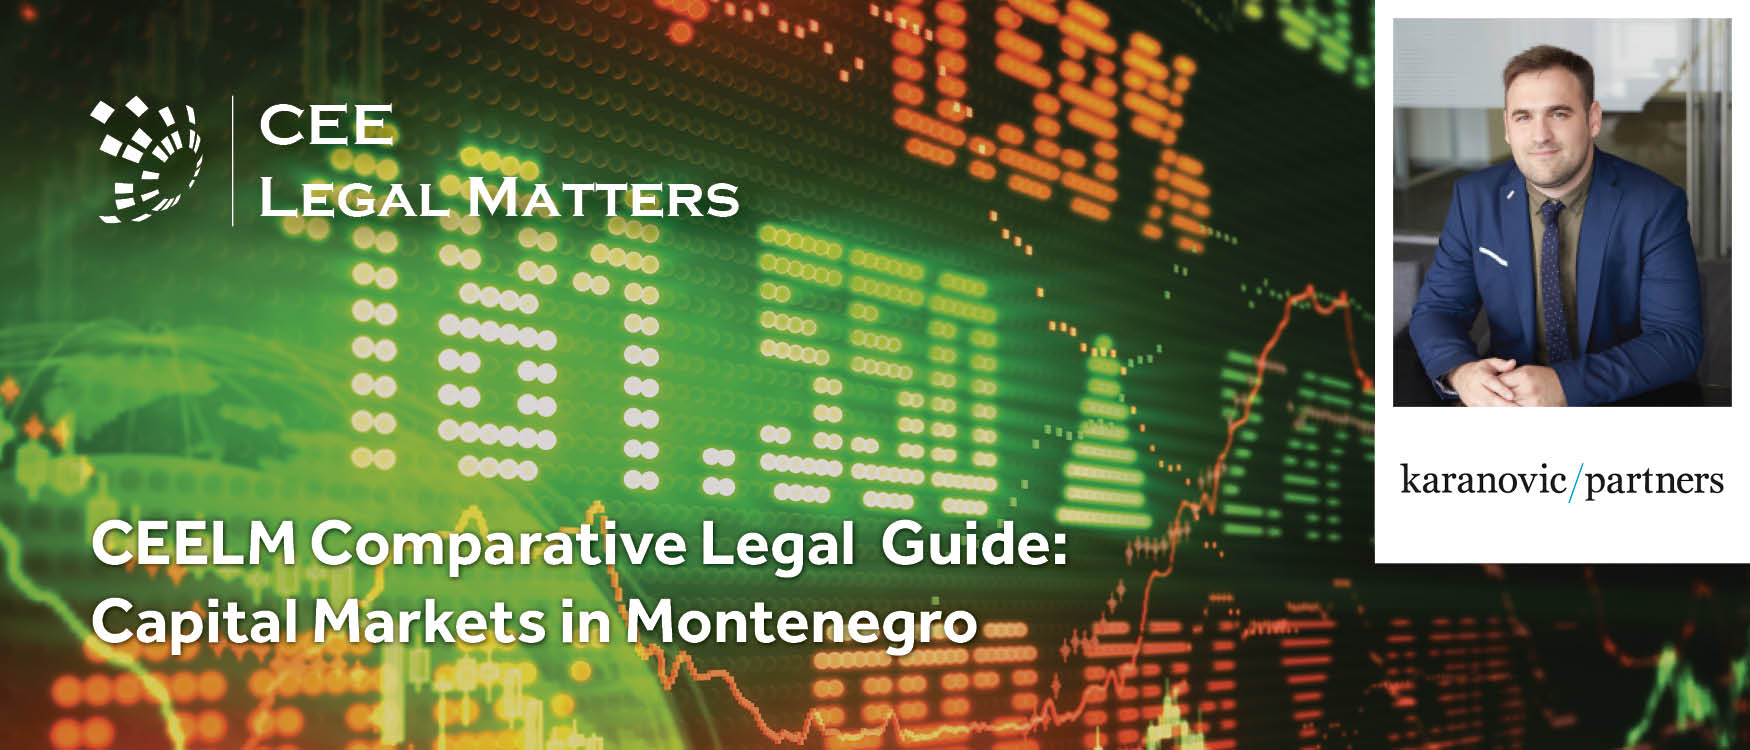 Capital Markets in Montenegro